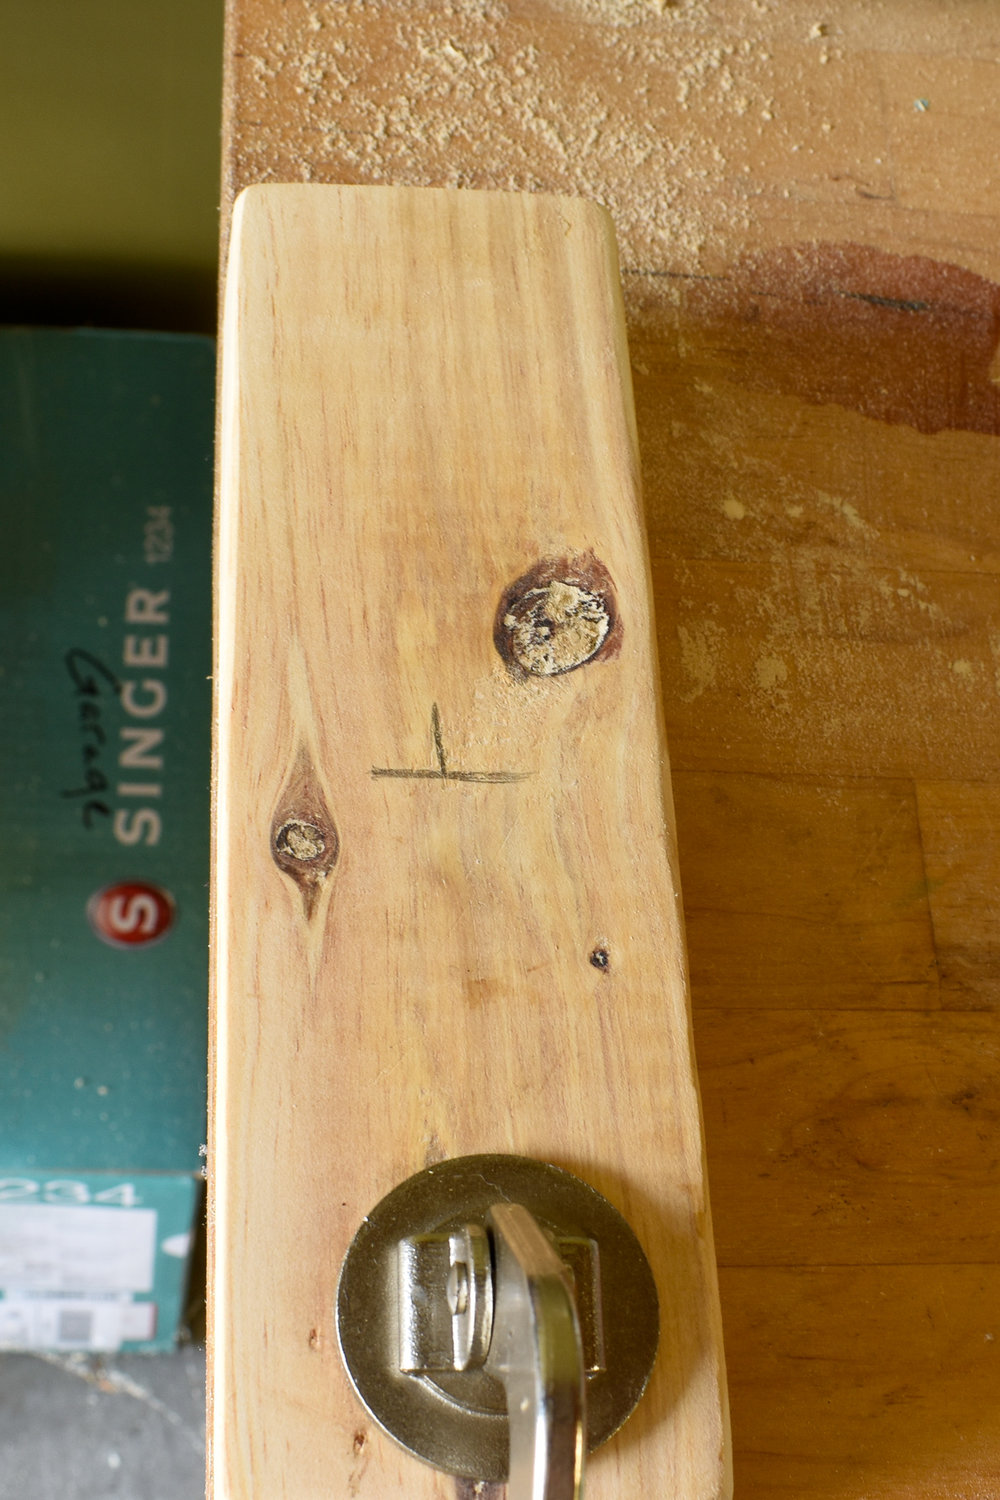 drilling a pilot hole to accomodate a broom stick - DIY BROOM PROJECT